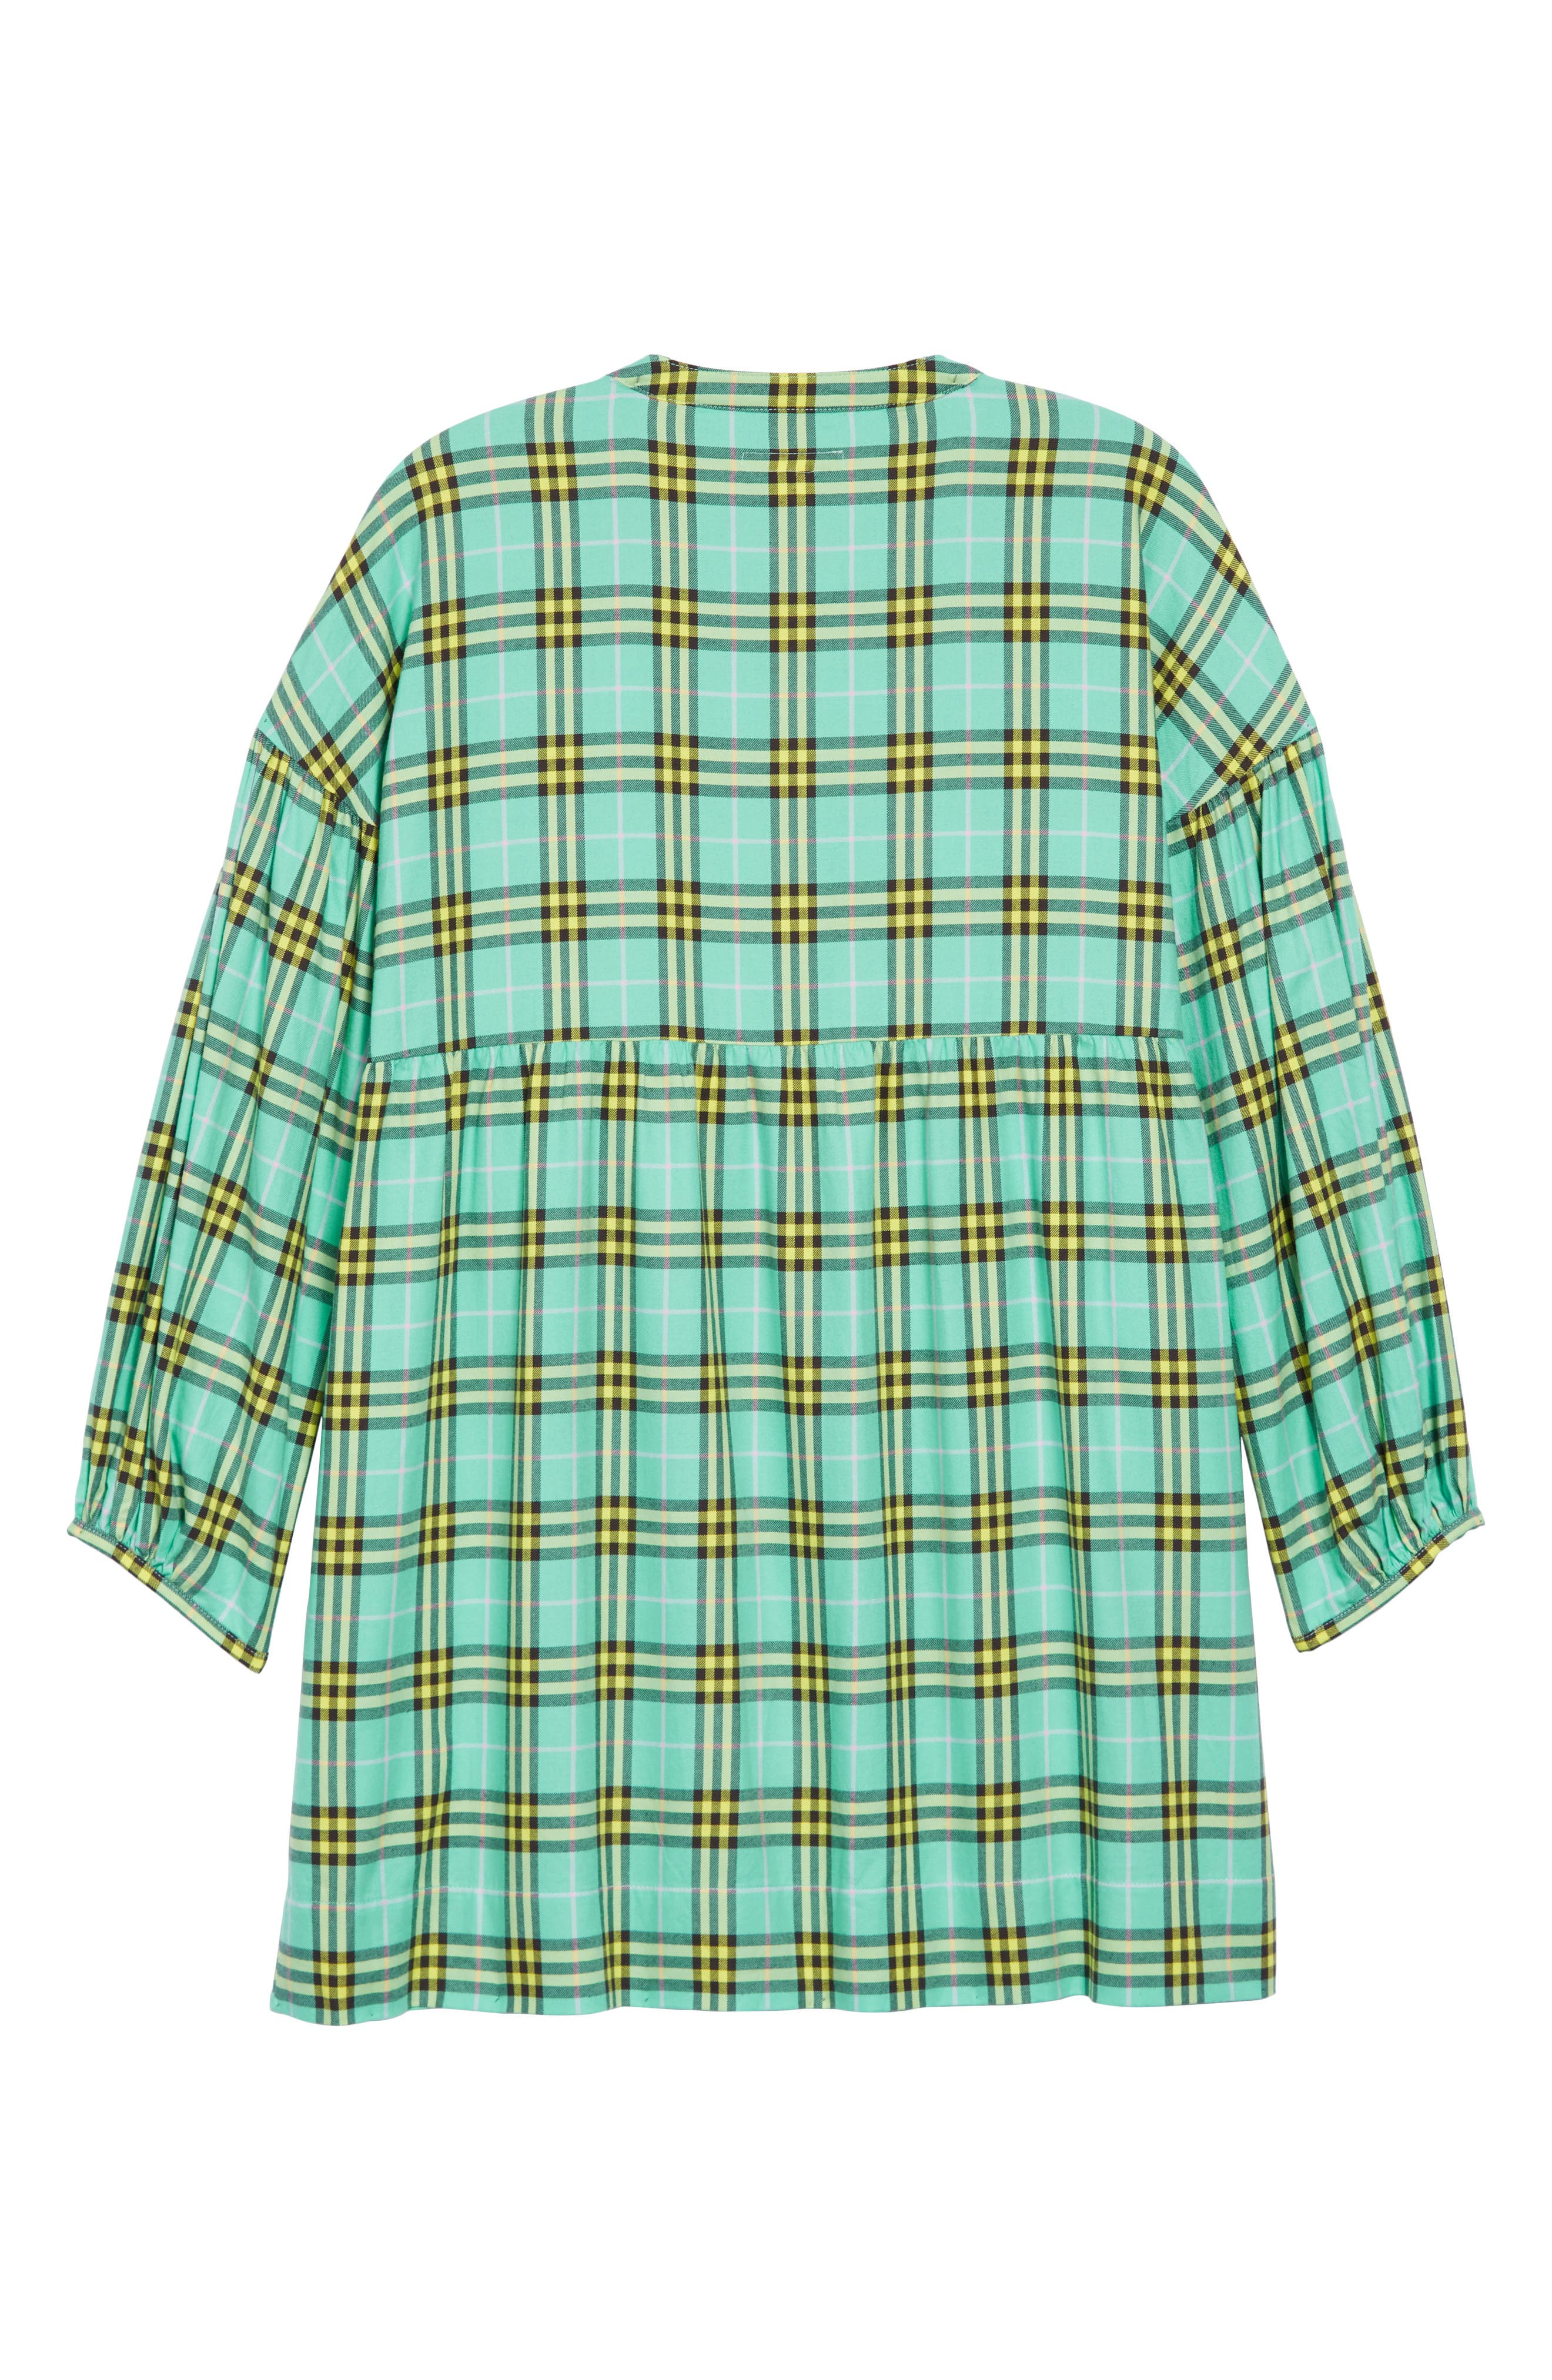 Marna Check Dress,                             Alternate thumbnail 2, color,                             BR TURQUOISE IP CHK